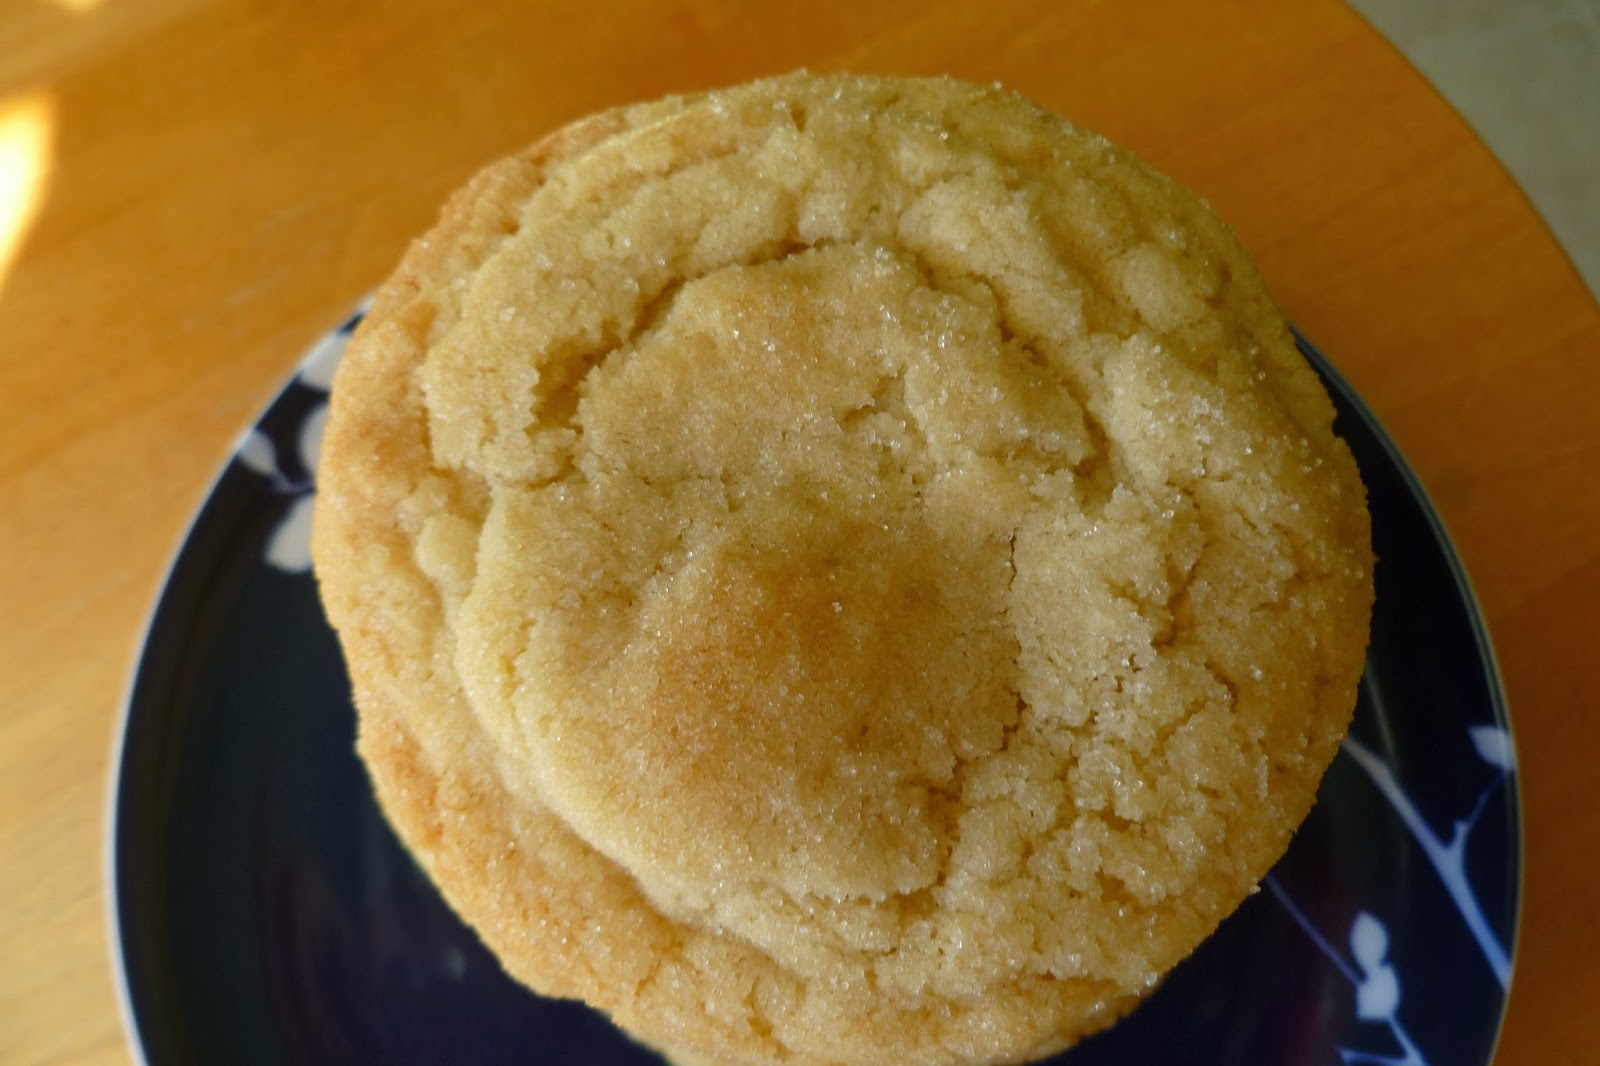 The Pastry Chef's Baking: Chewy Sugar Cookies